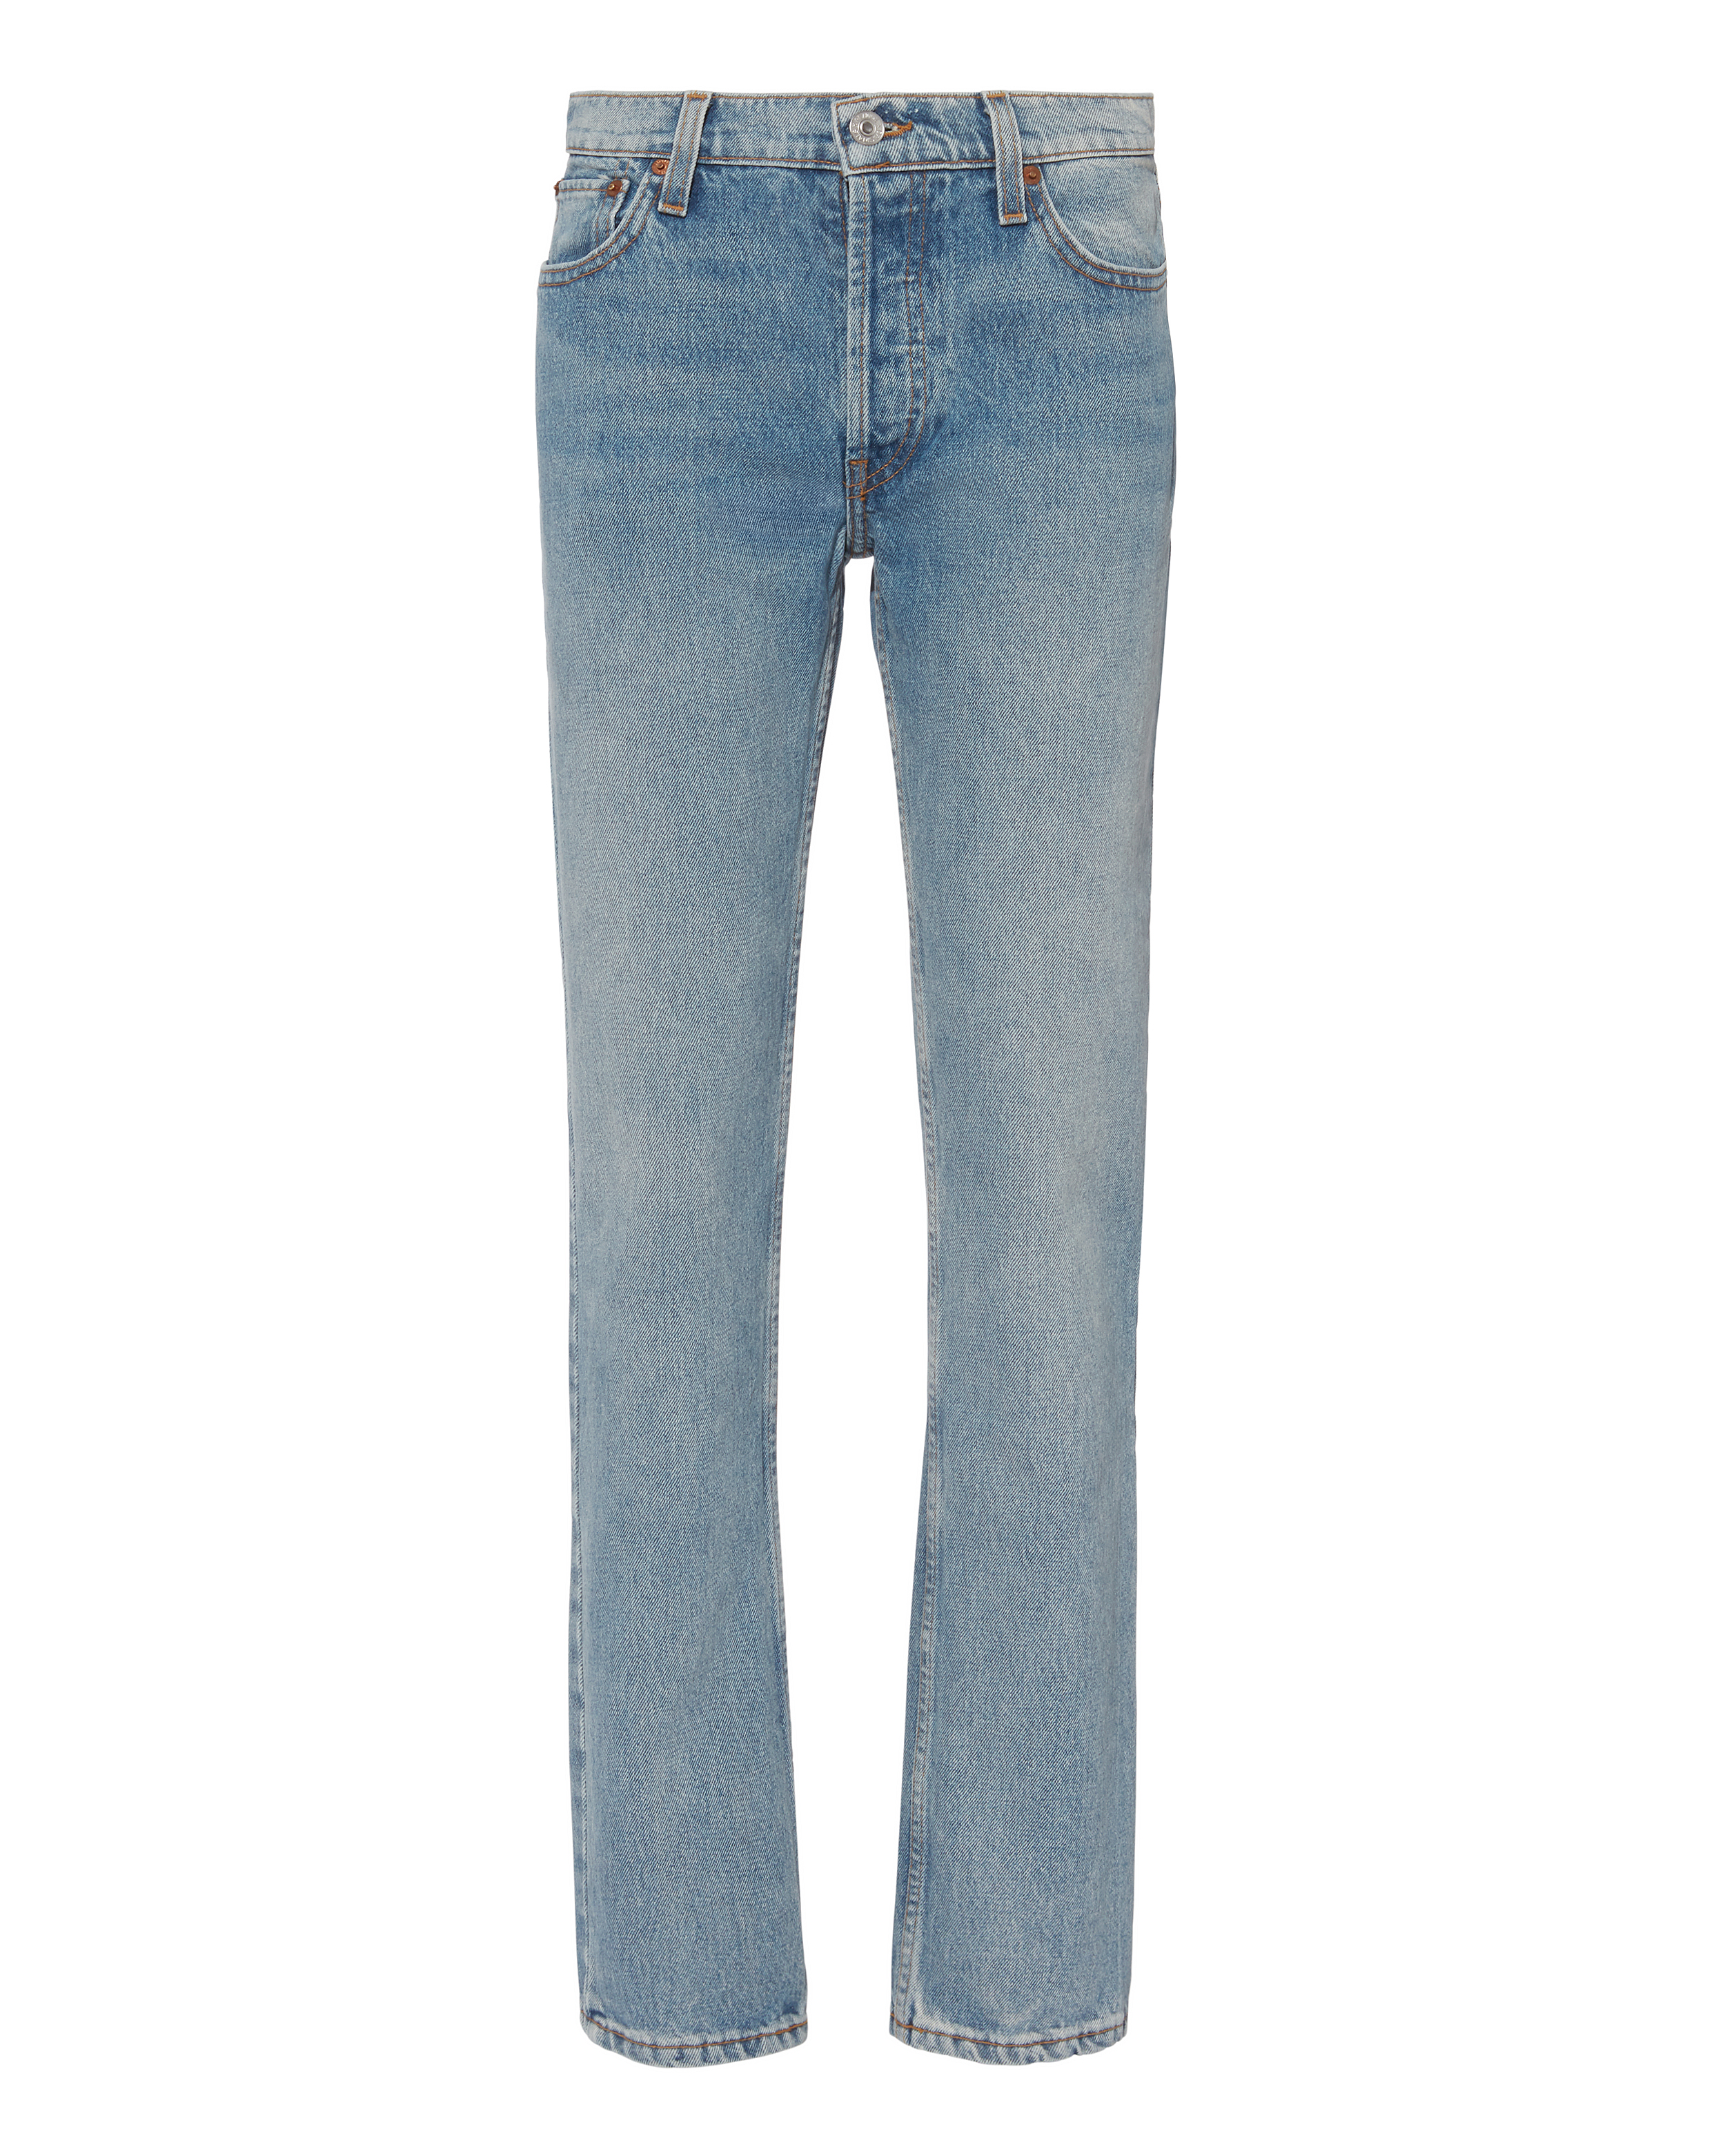 The Crawford Jeans by Re/Done